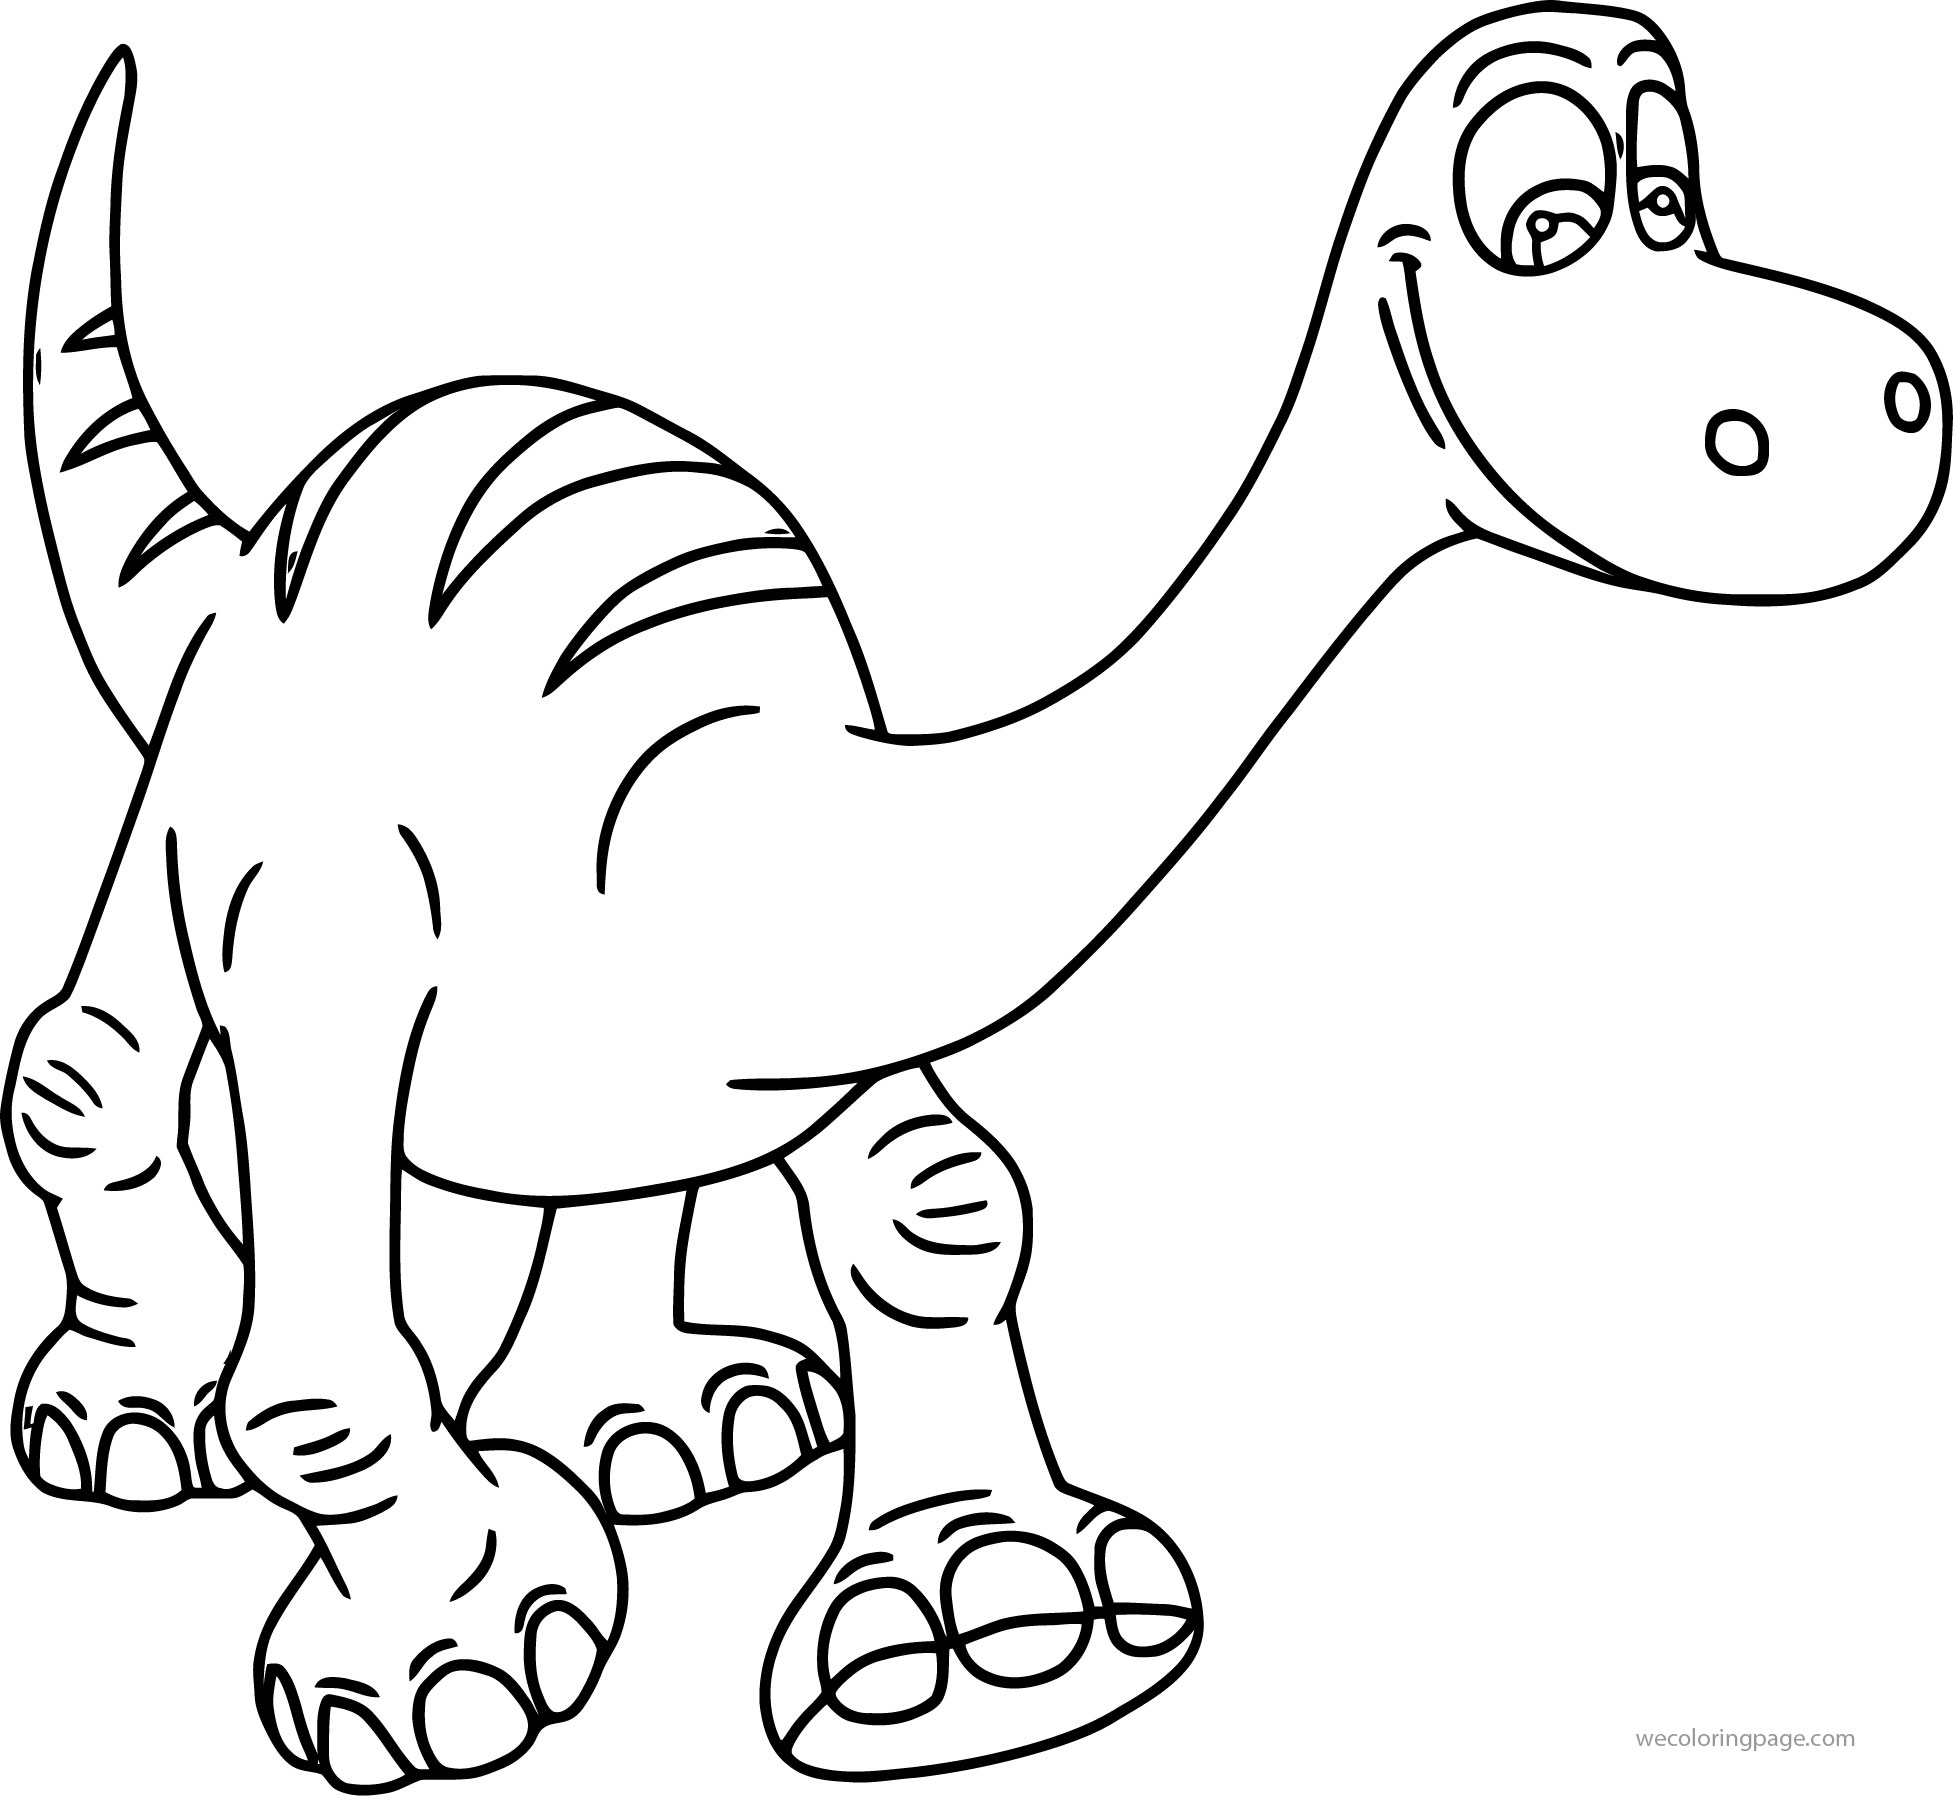 Peter Pan Disney Ausmalbilder : The Good Dinosaur Disney Coloring Pages Wecoloringpage Com